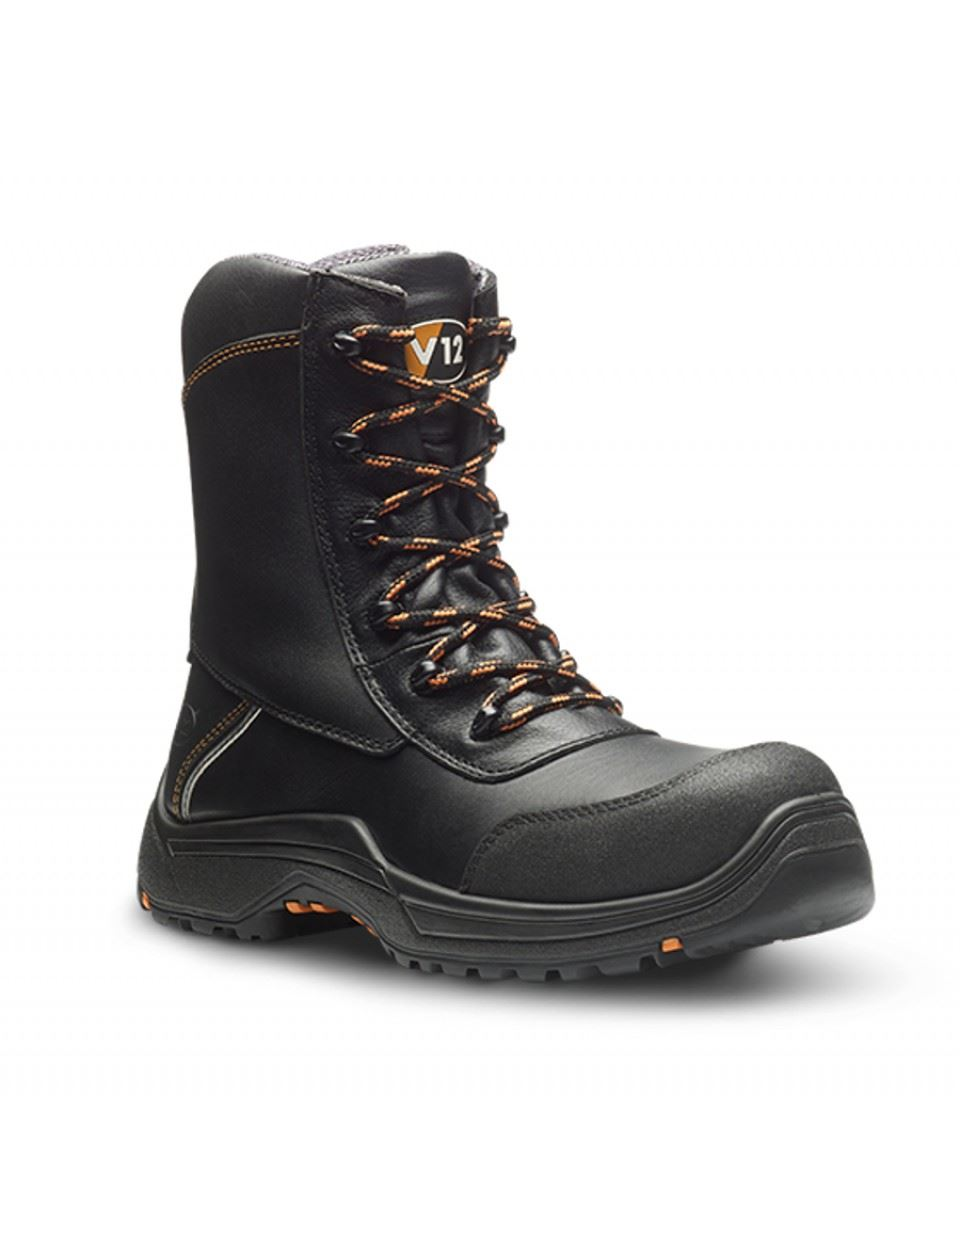 6e3d5822943 Details about V12 Defiant IGS S3 HRO High Leg Zip Boot